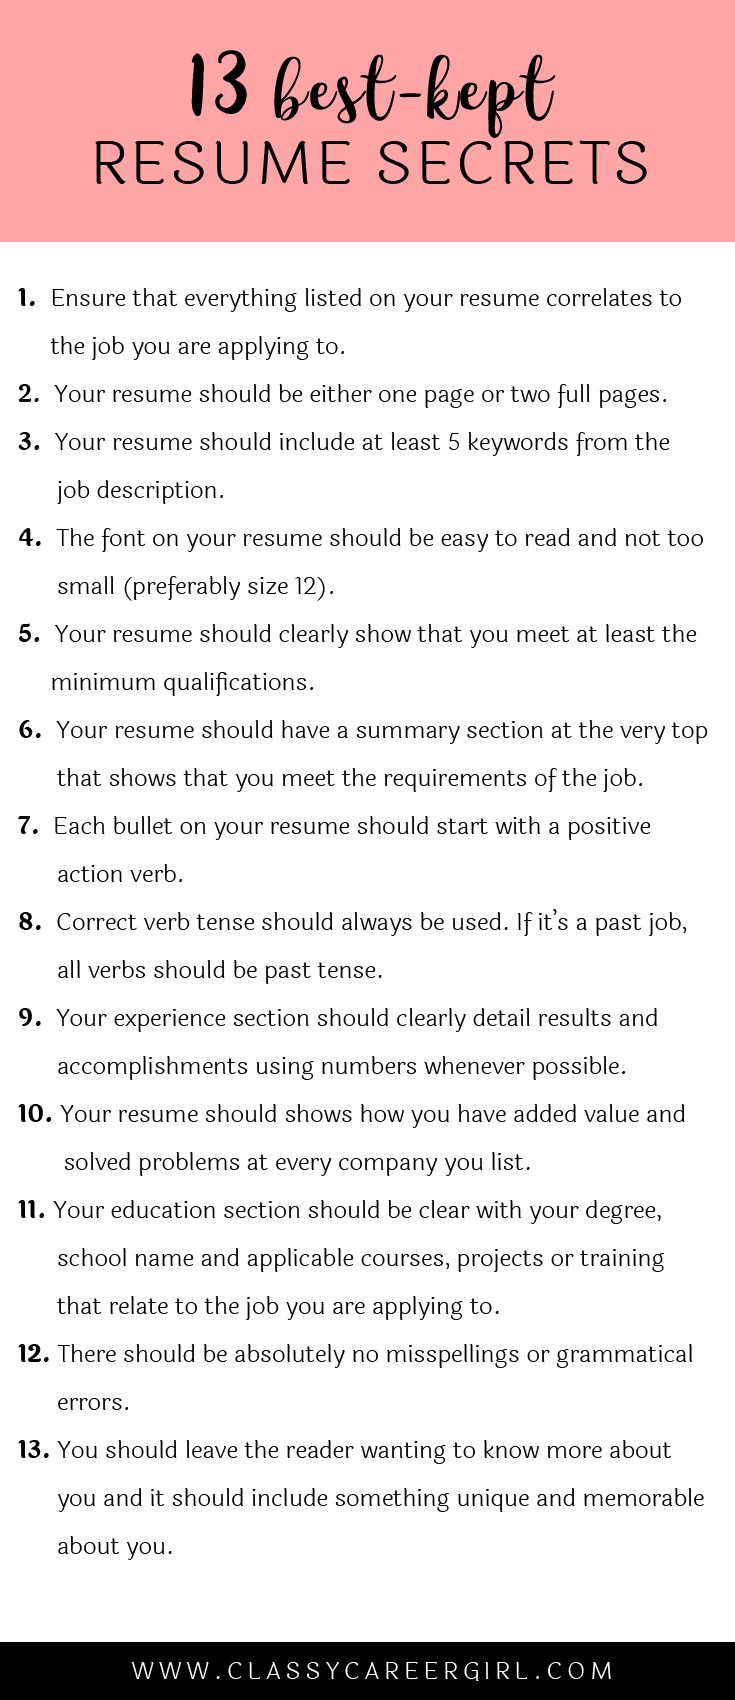 Opposenewapstandardsus  Seductive  Ideas About Resume On Pinterest  Cv Format Resume Cv And  With Magnificent Some Hiring Managers Will Toss Your Resume Out If You Dont Know These  With Captivating Firefox Resume Download Also Types Of Skills Resume In Addition Legal Assistant Resume Sample And Sample Resume For Students As Well As Resume Objective Career Change Additionally Sales Representative Resume Examples From Pinterestcom With Opposenewapstandardsus  Magnificent  Ideas About Resume On Pinterest  Cv Format Resume Cv And  With Captivating Some Hiring Managers Will Toss Your Resume Out If You Dont Know These  And Seductive Firefox Resume Download Also Types Of Skills Resume In Addition Legal Assistant Resume Sample From Pinterestcom